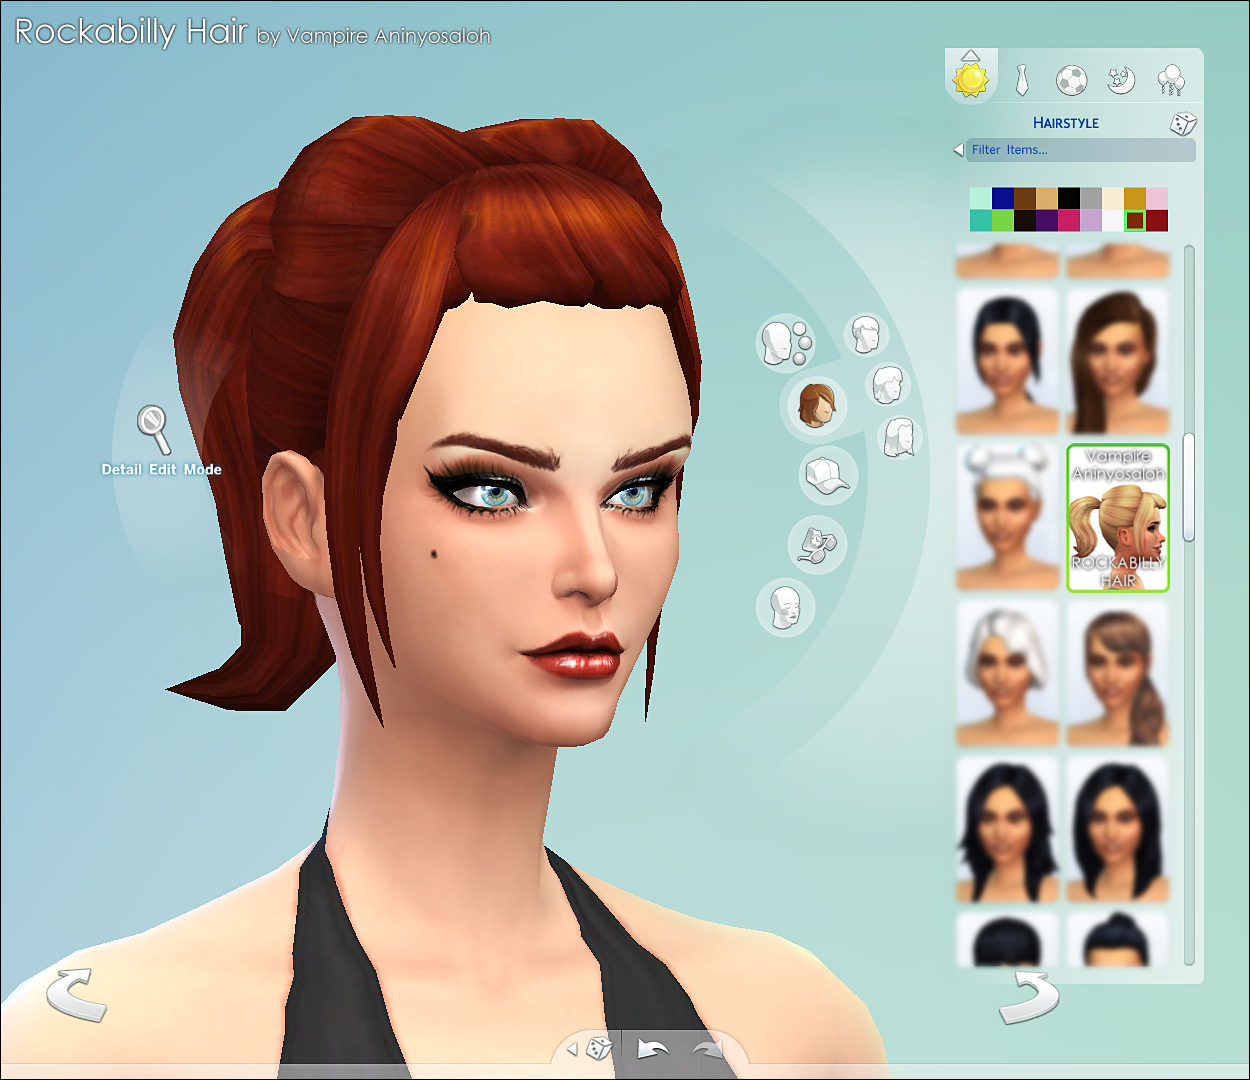 Advertisement. Mod The Sims   Rockabilly Hair  NEW MESH